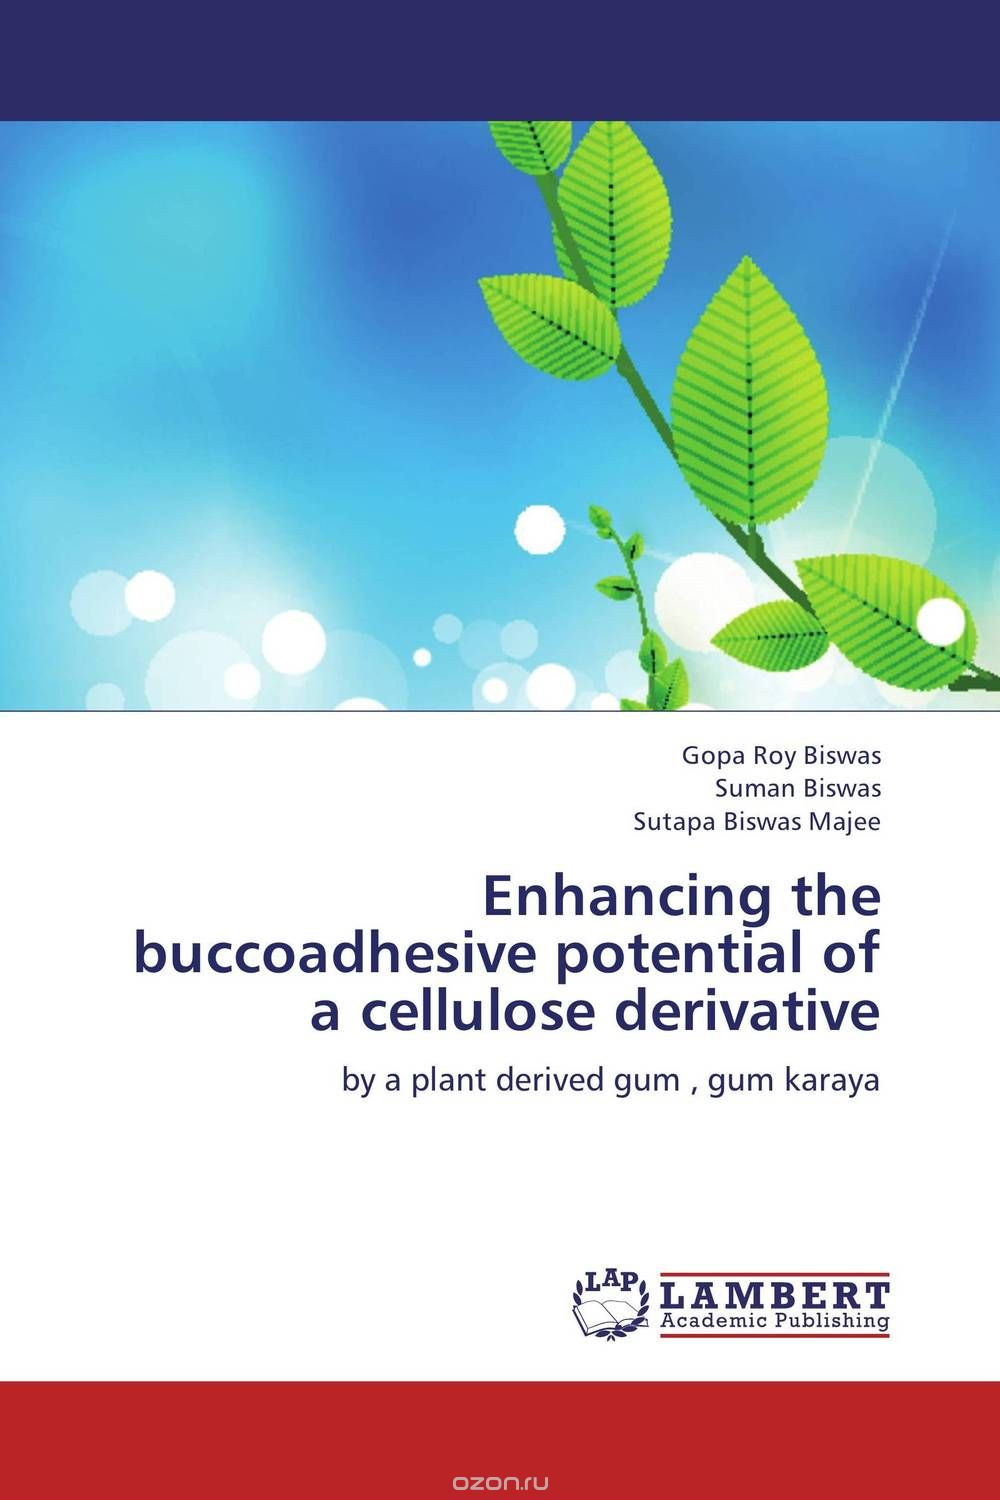 Enhancing the buccoadhesive potential of a cellulose derivative